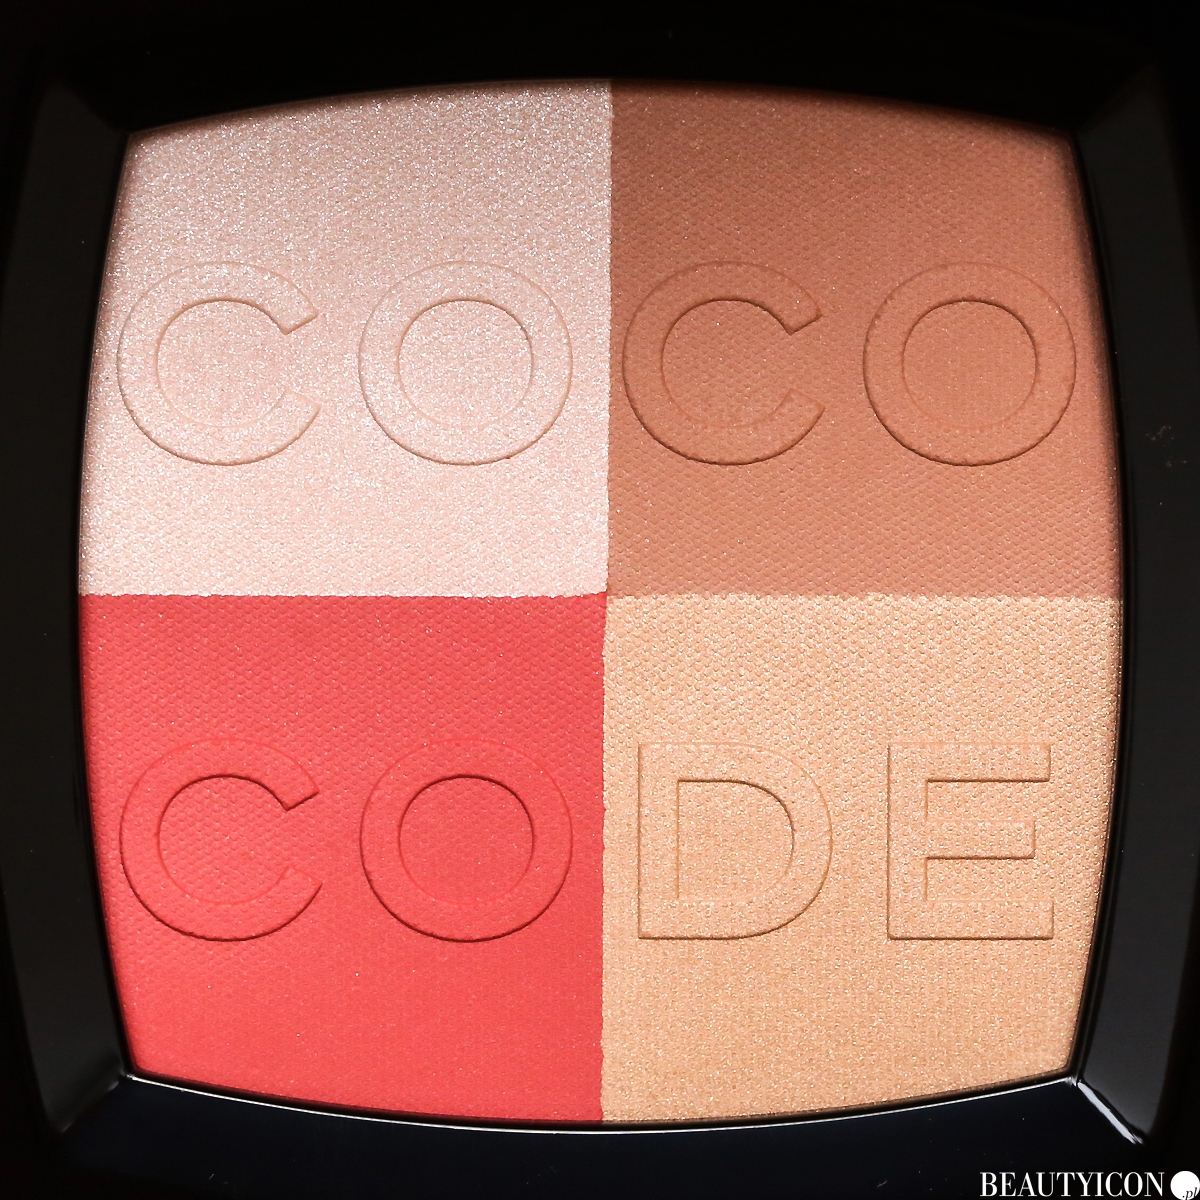 Chanel Coco Codes Blush Harmony